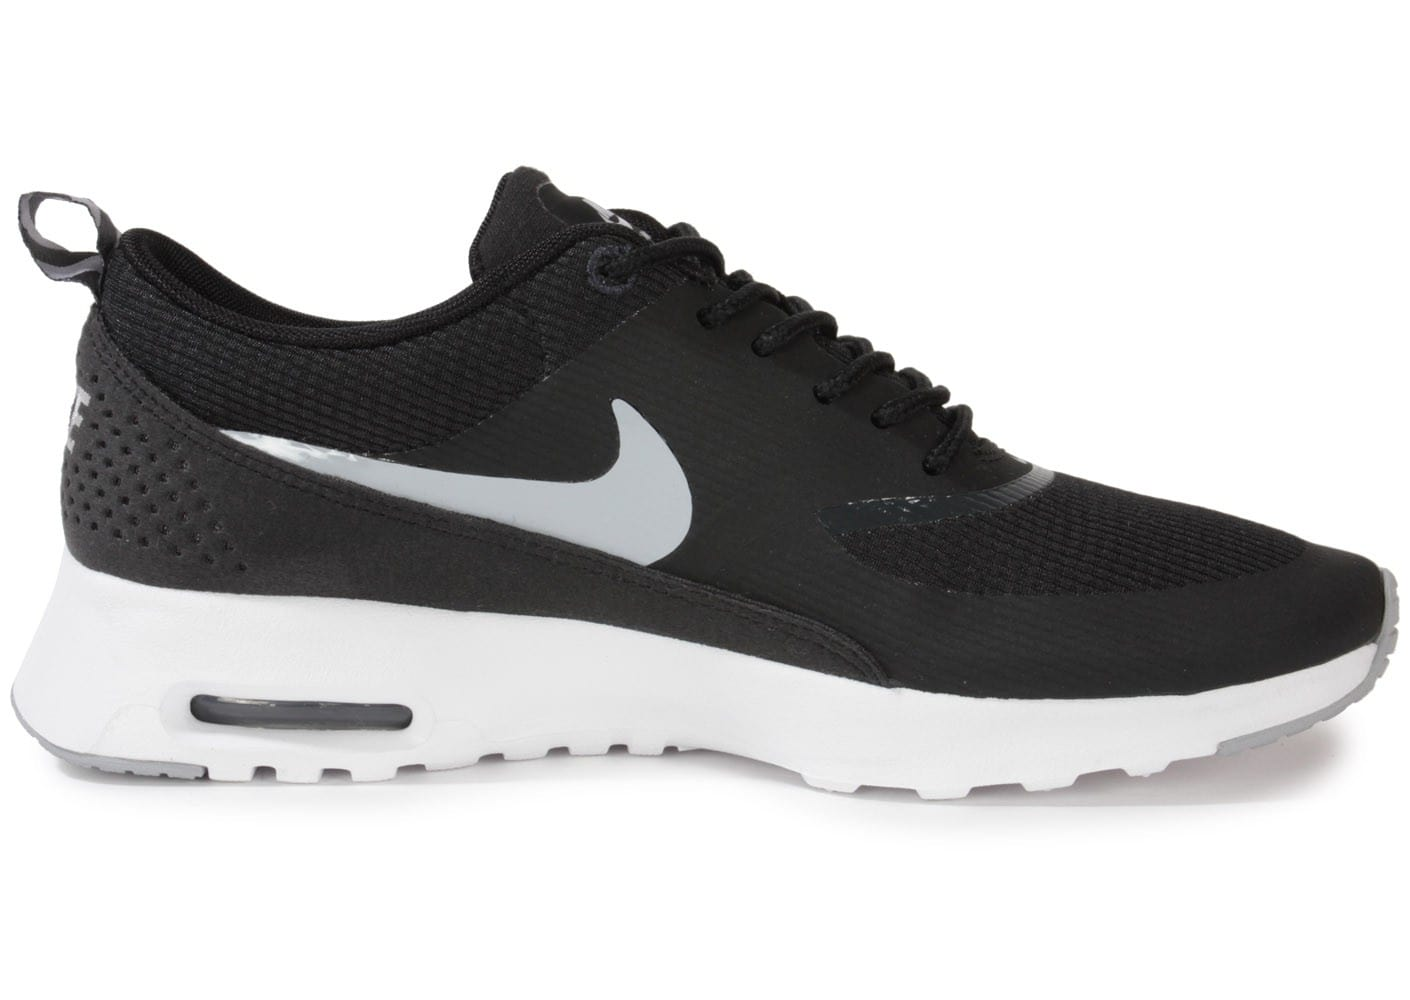 buy popular c4a76 be589 Chaussures Nike Air Max Thea noires Fashion femme 0qt7pex